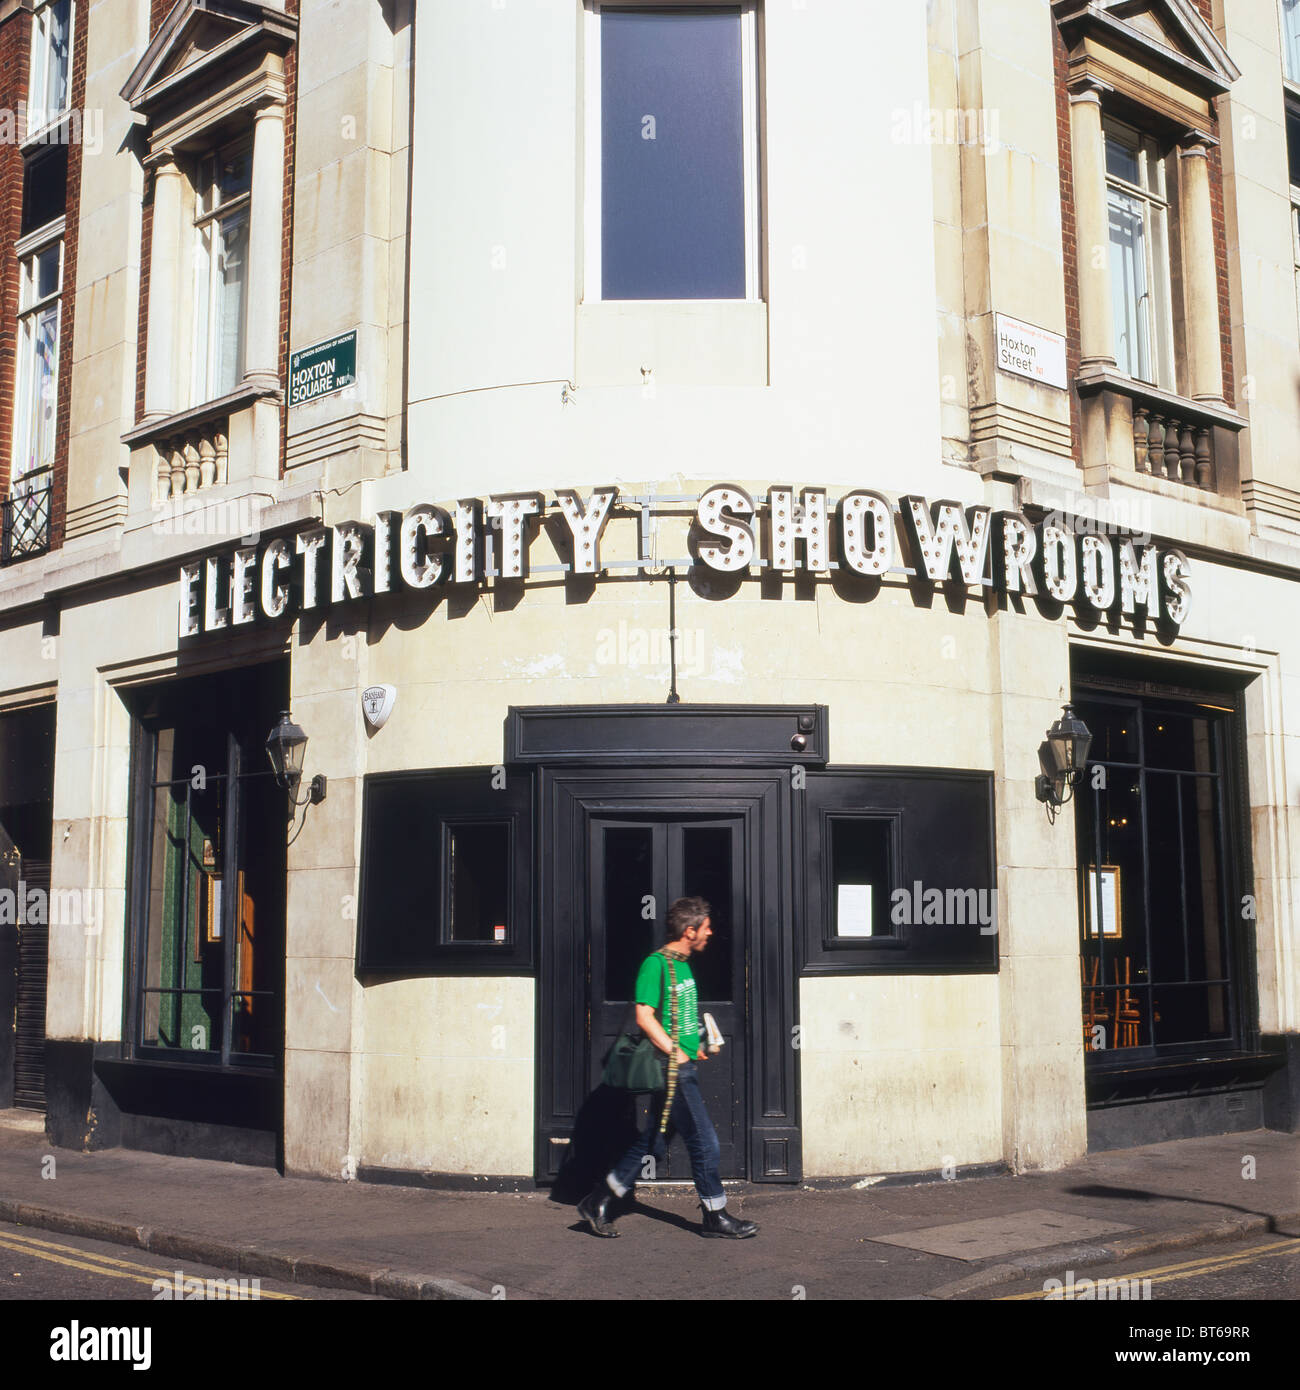 Electricity Showrooms building Hoxton Square, Hackney East End, London UK - Stock Image